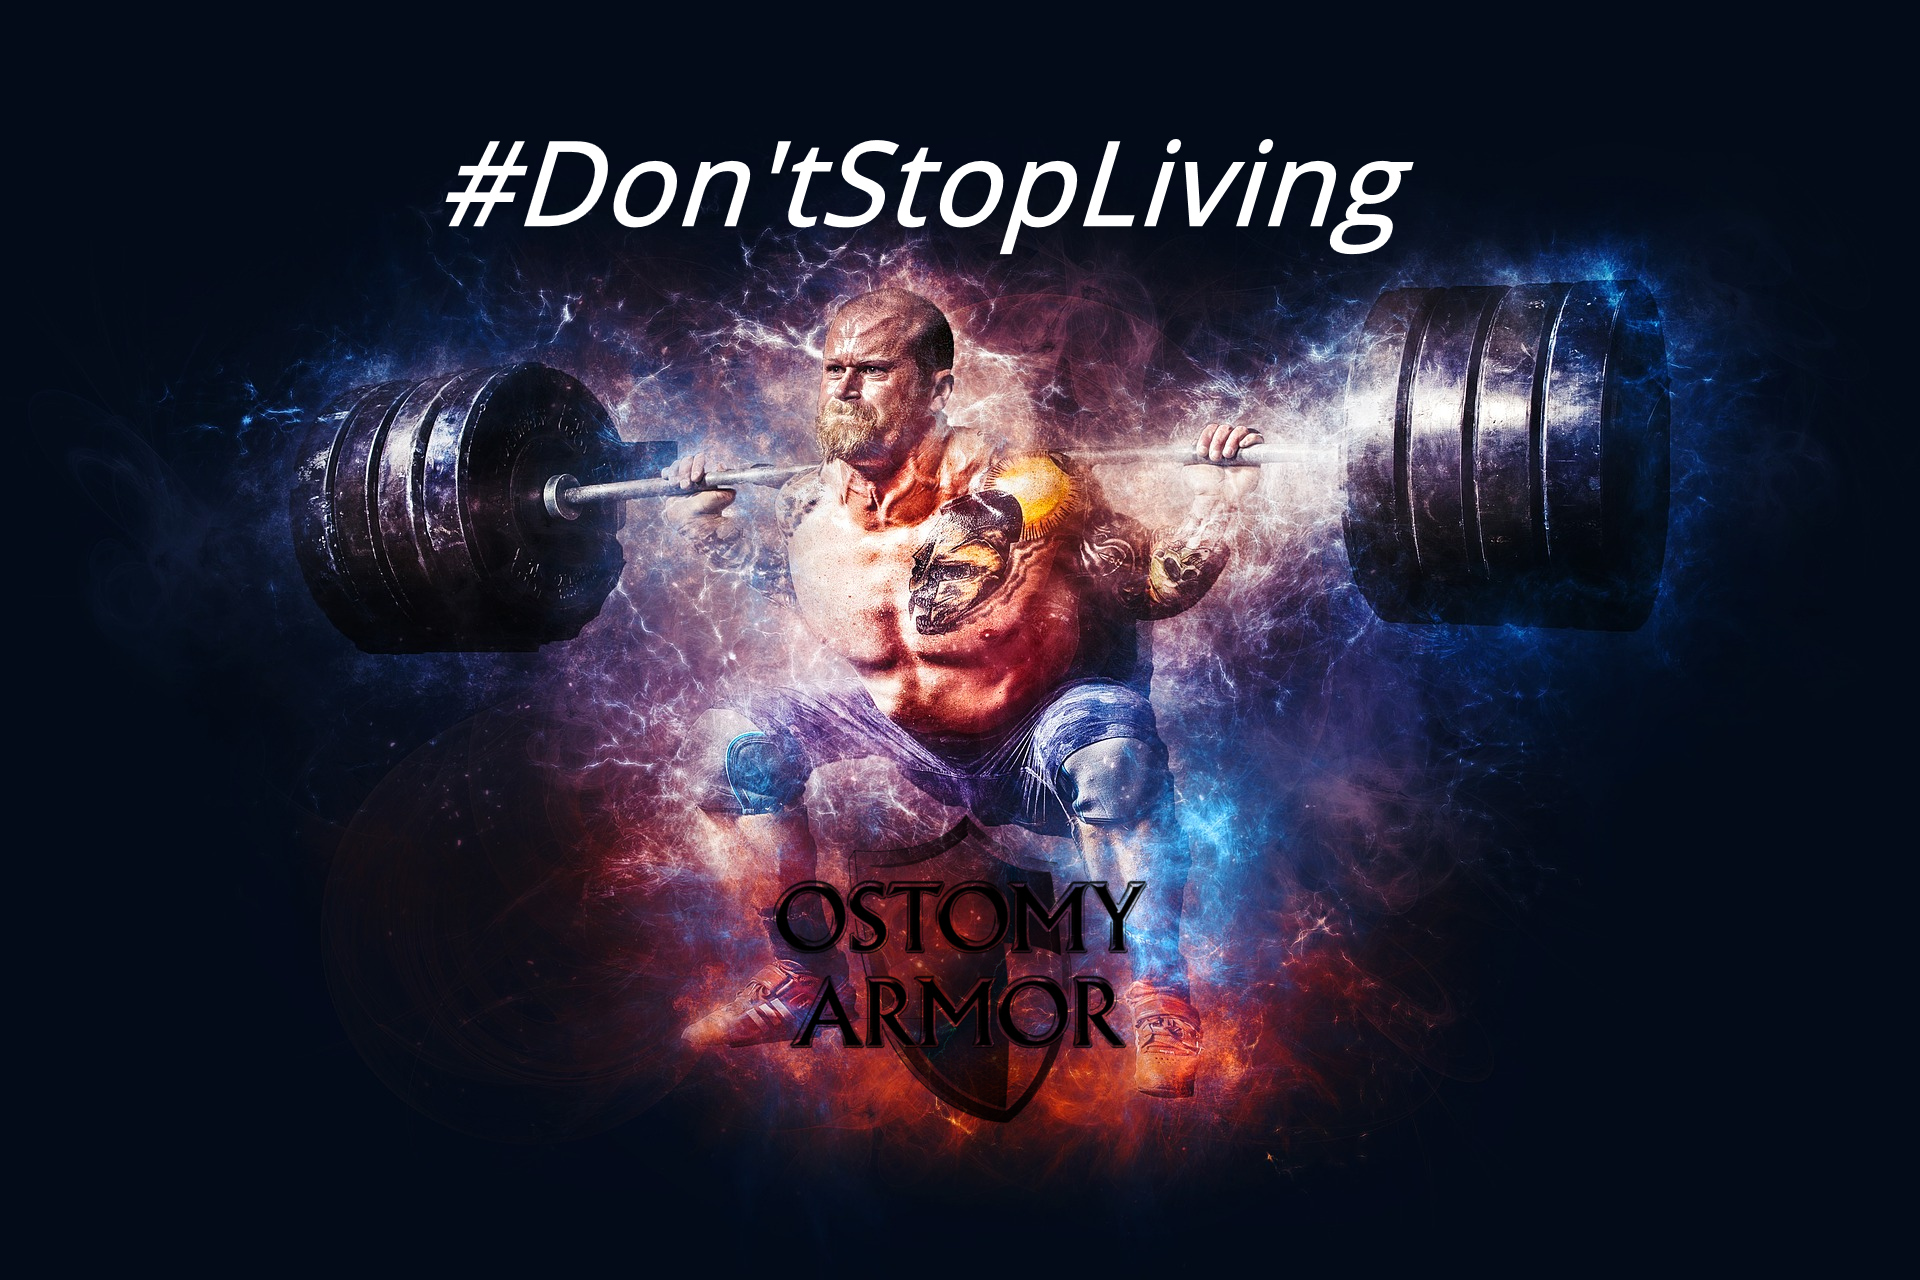 Don't stop living 11